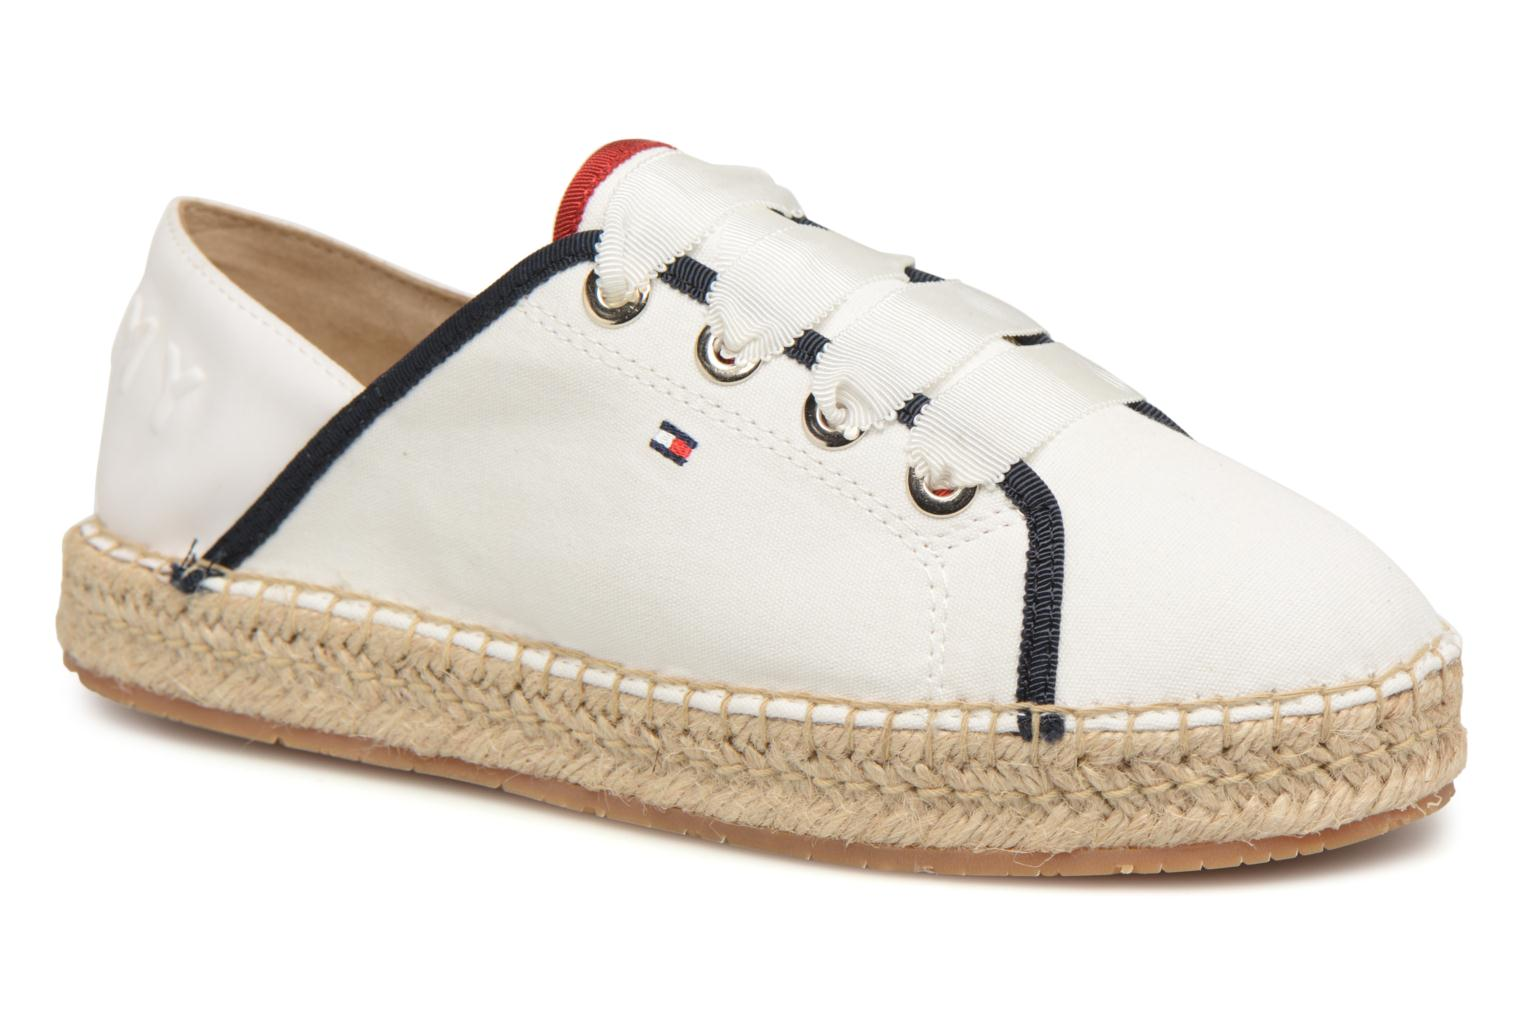 TH METALLIC LACE UP ESPADRILLE White